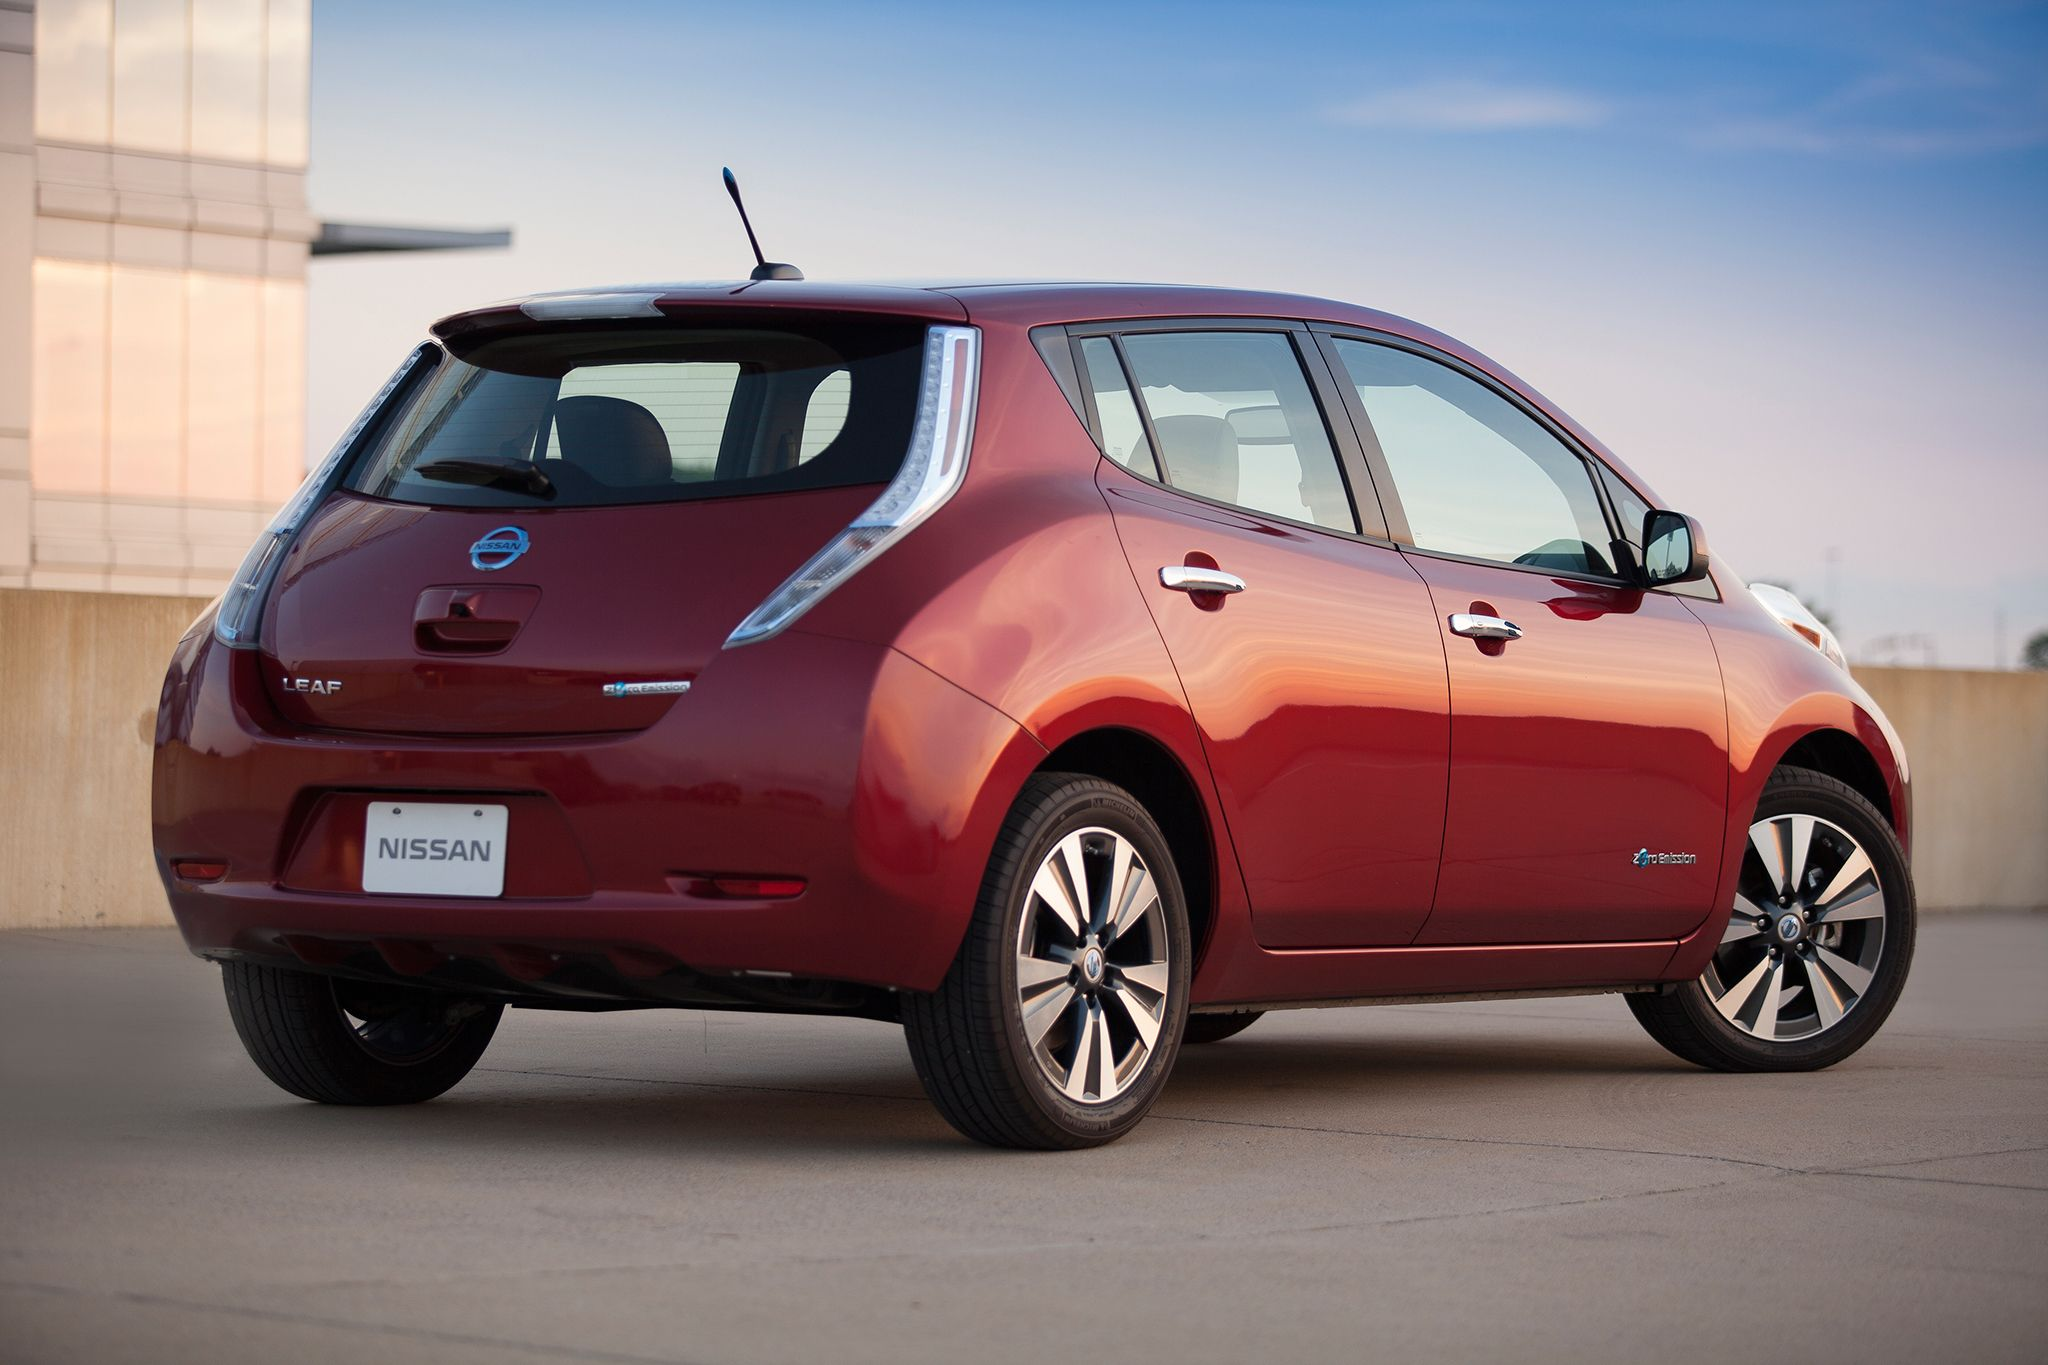 ford leaf new nissan lease electric focus program ev rivals leasing